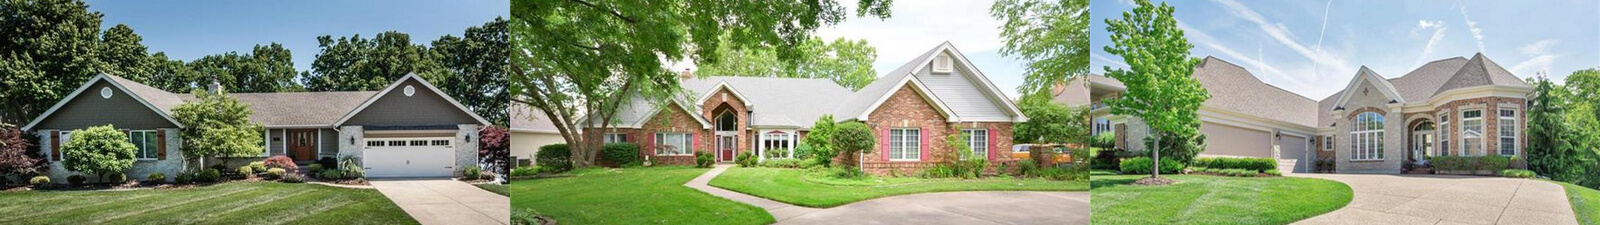 Astounding Lake St Louis Real Estate Homes For Sale In Lake St Home Interior And Landscaping Pimpapssignezvosmurscom